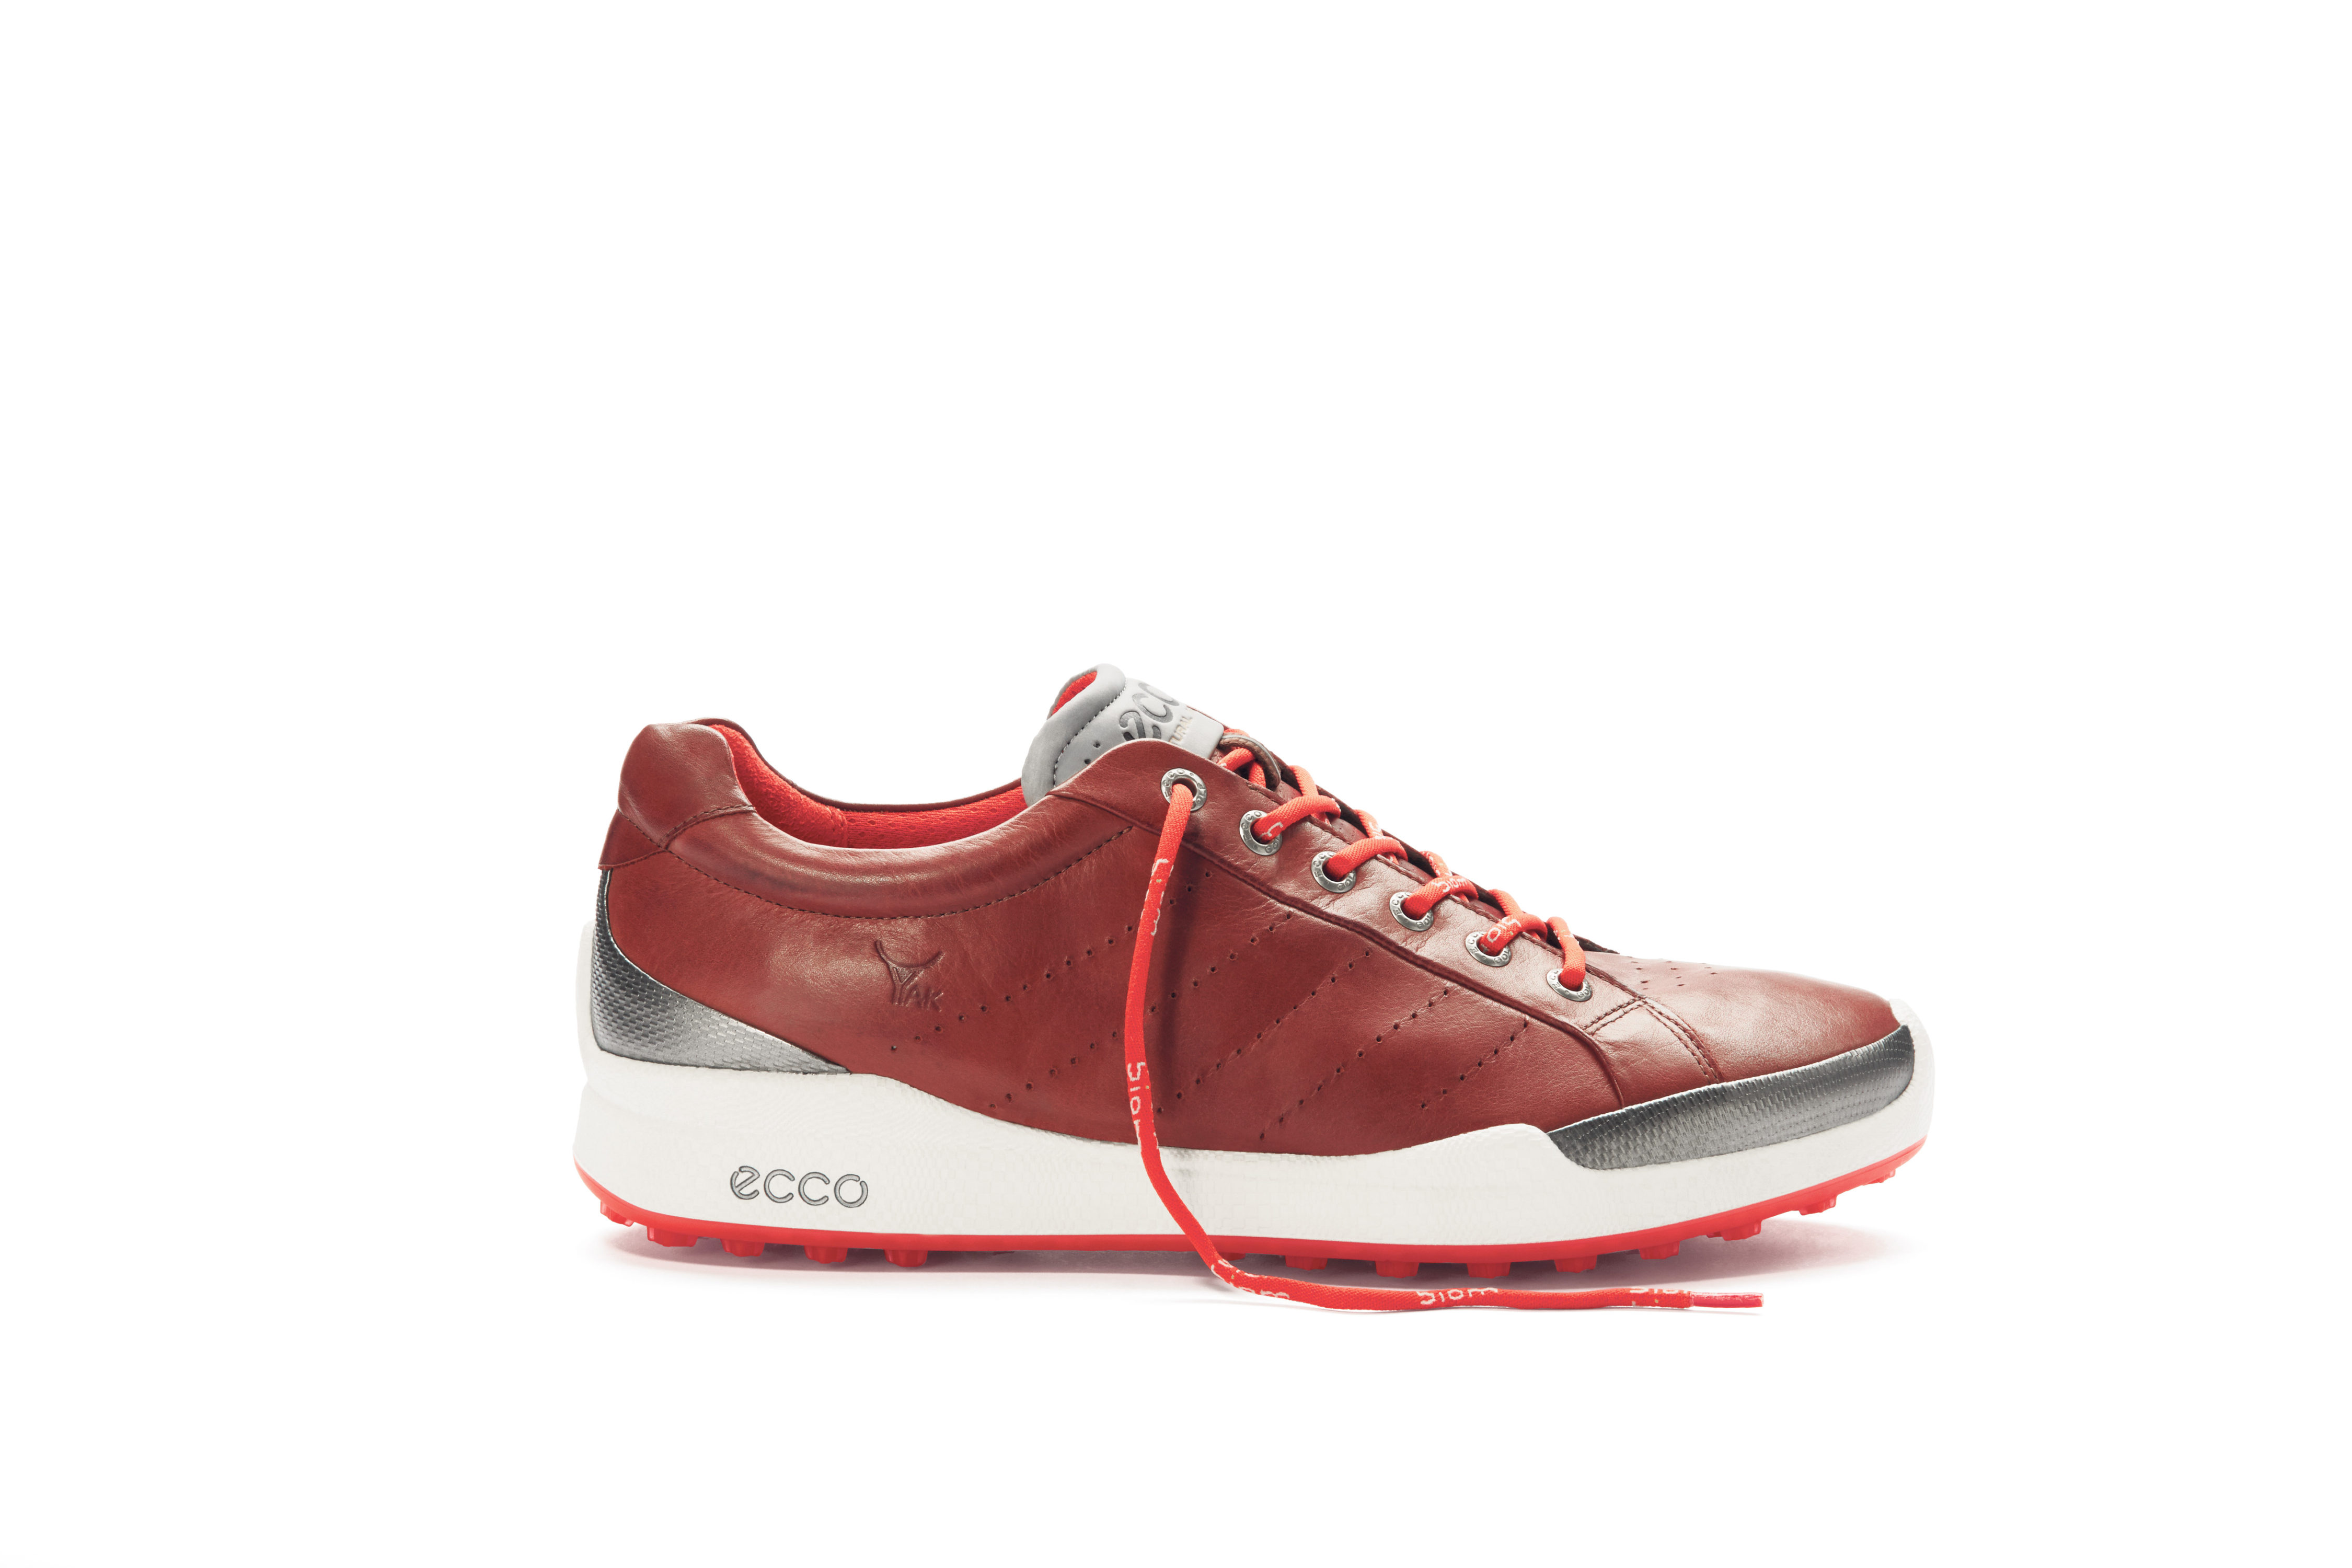 7a3bf5539599 New ECCO BIOM Hybrid Natural Motion golf shoes - Global Golfer Magazine